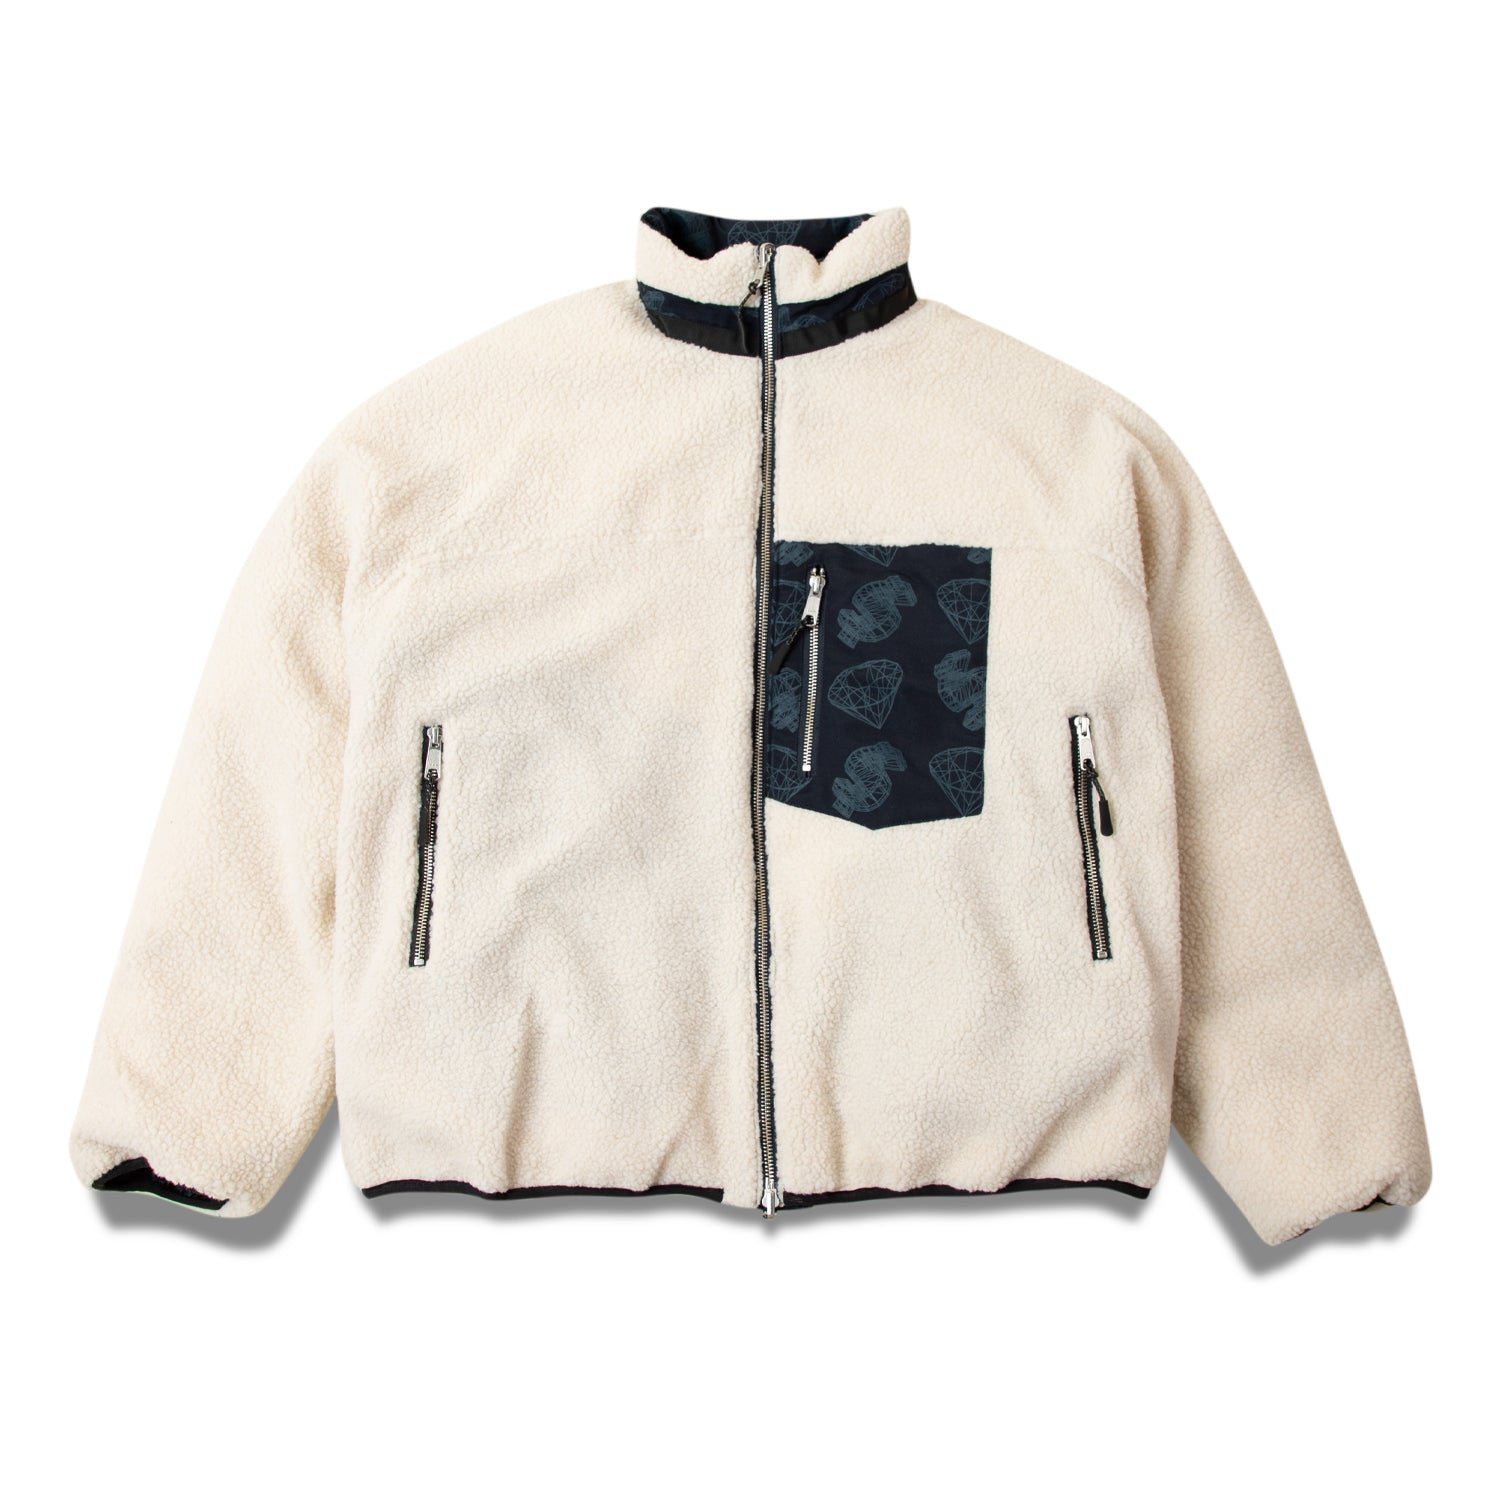 WIREFRAME PUFFER JACKET